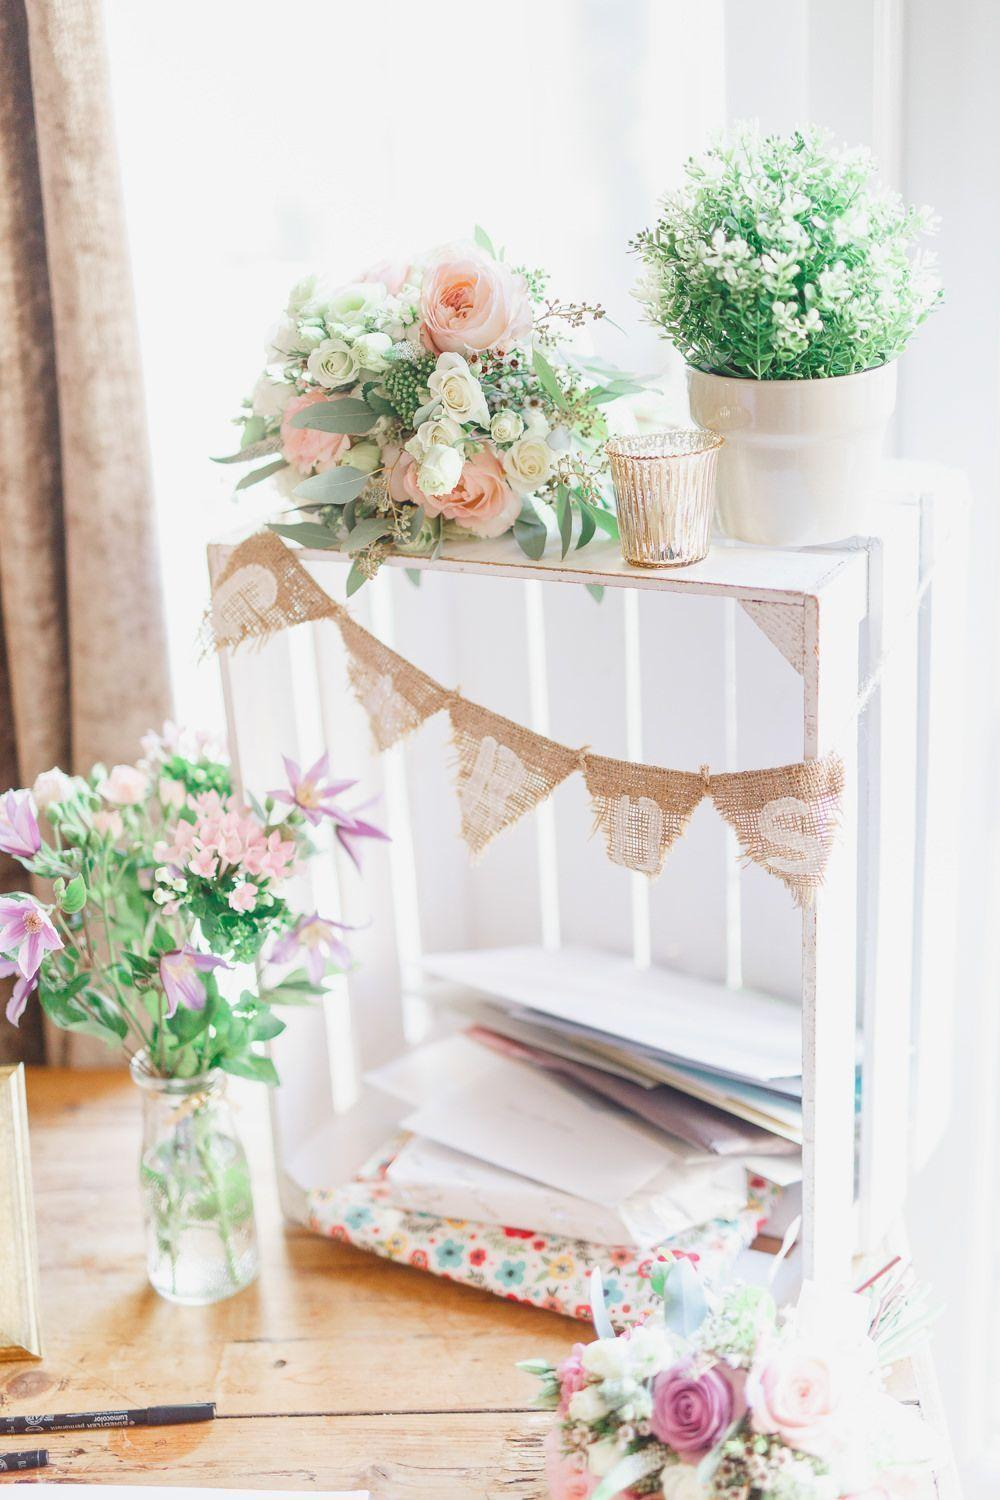 Wedding arrangements: 70 ideas for table, flowers and decoration 53